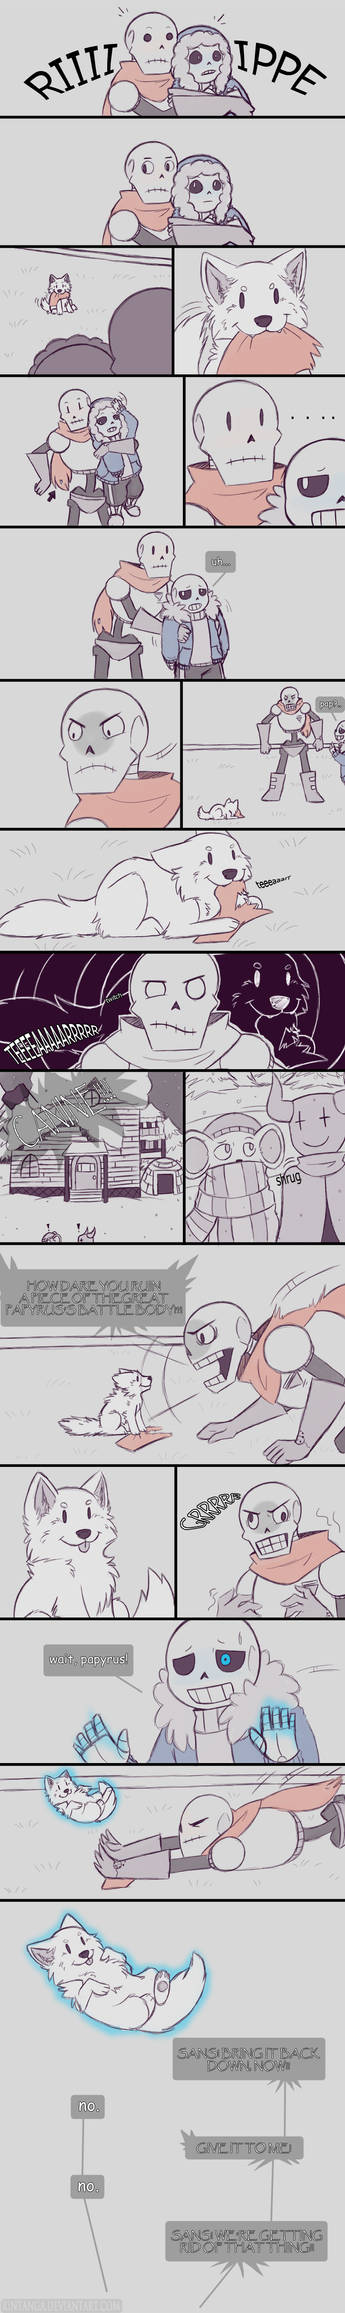 .Undertale Fancomic: Annoying Dog - Page 8.+